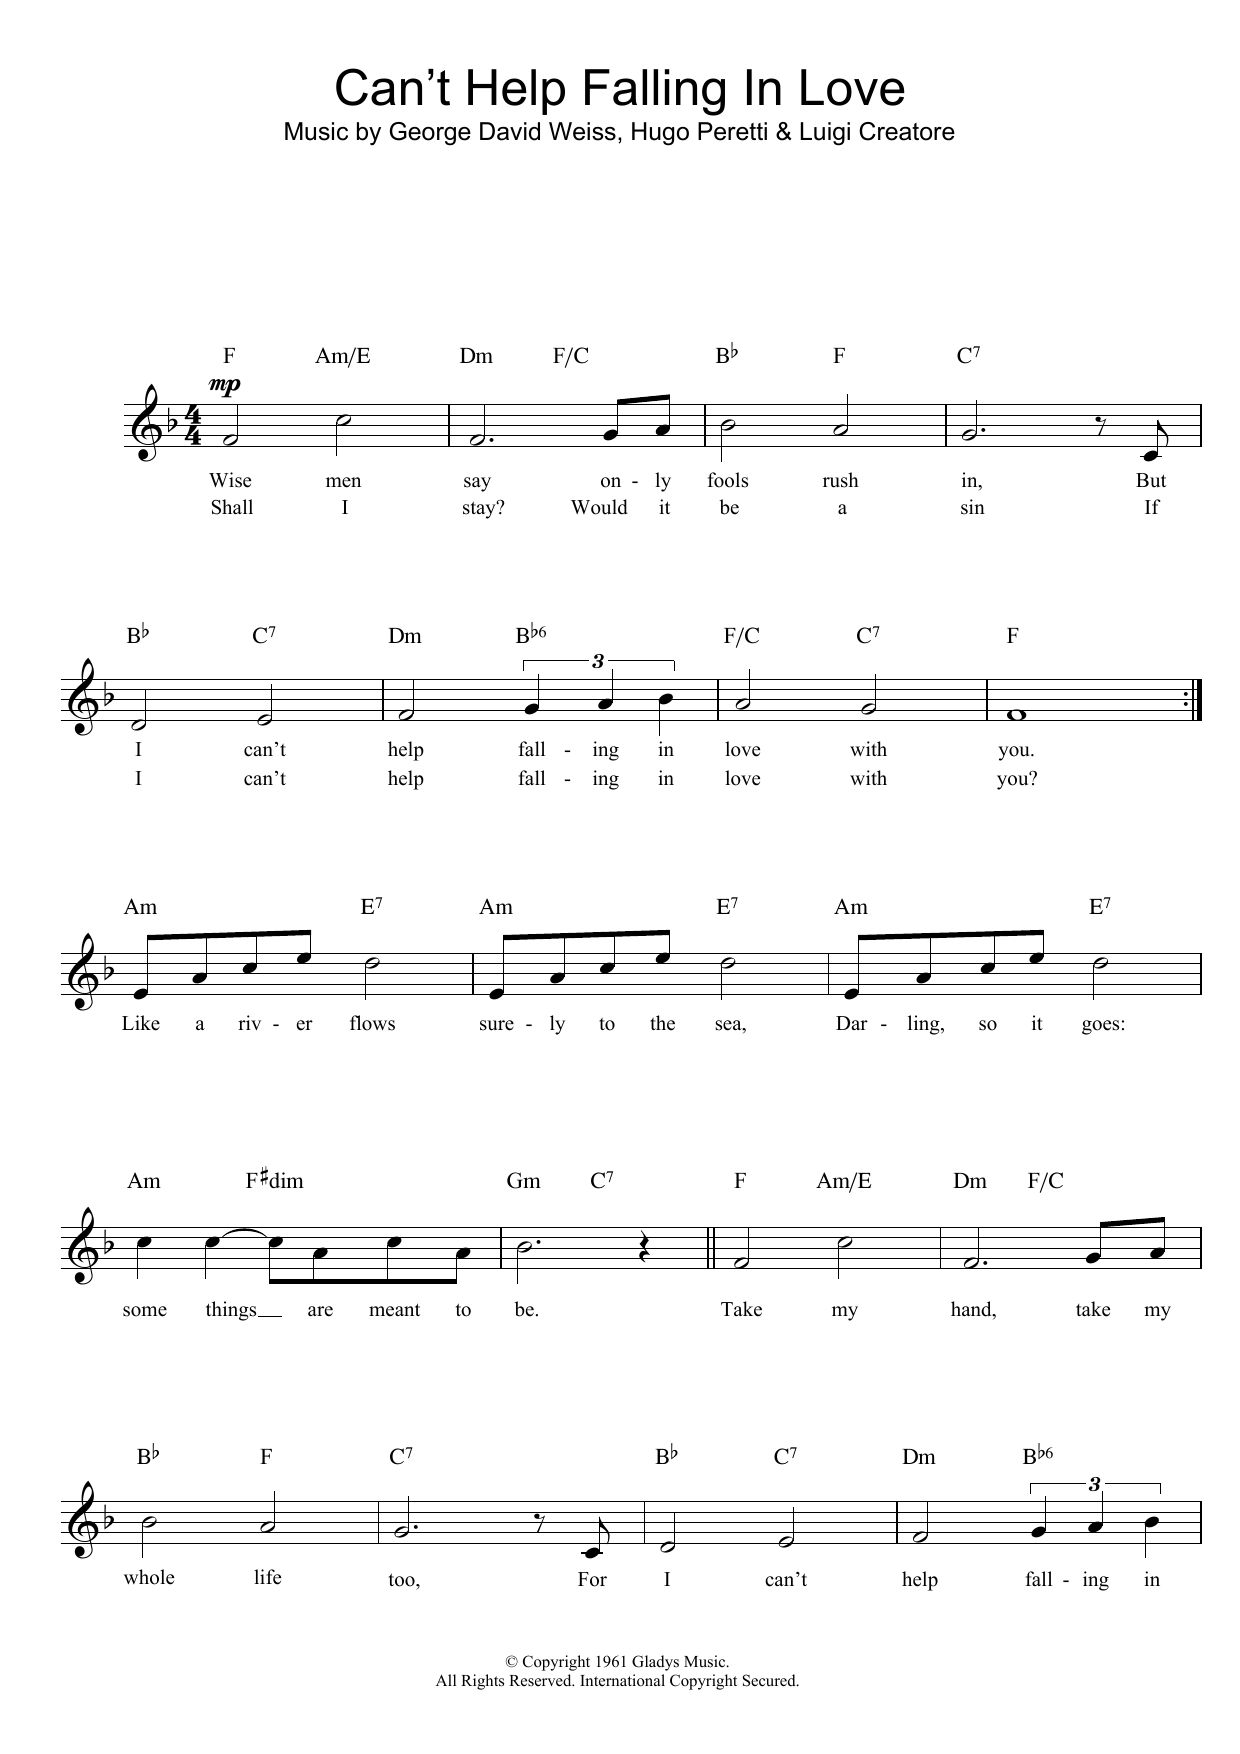 UB40 Can't Help Falling In Love sheet music notes printable PDF score